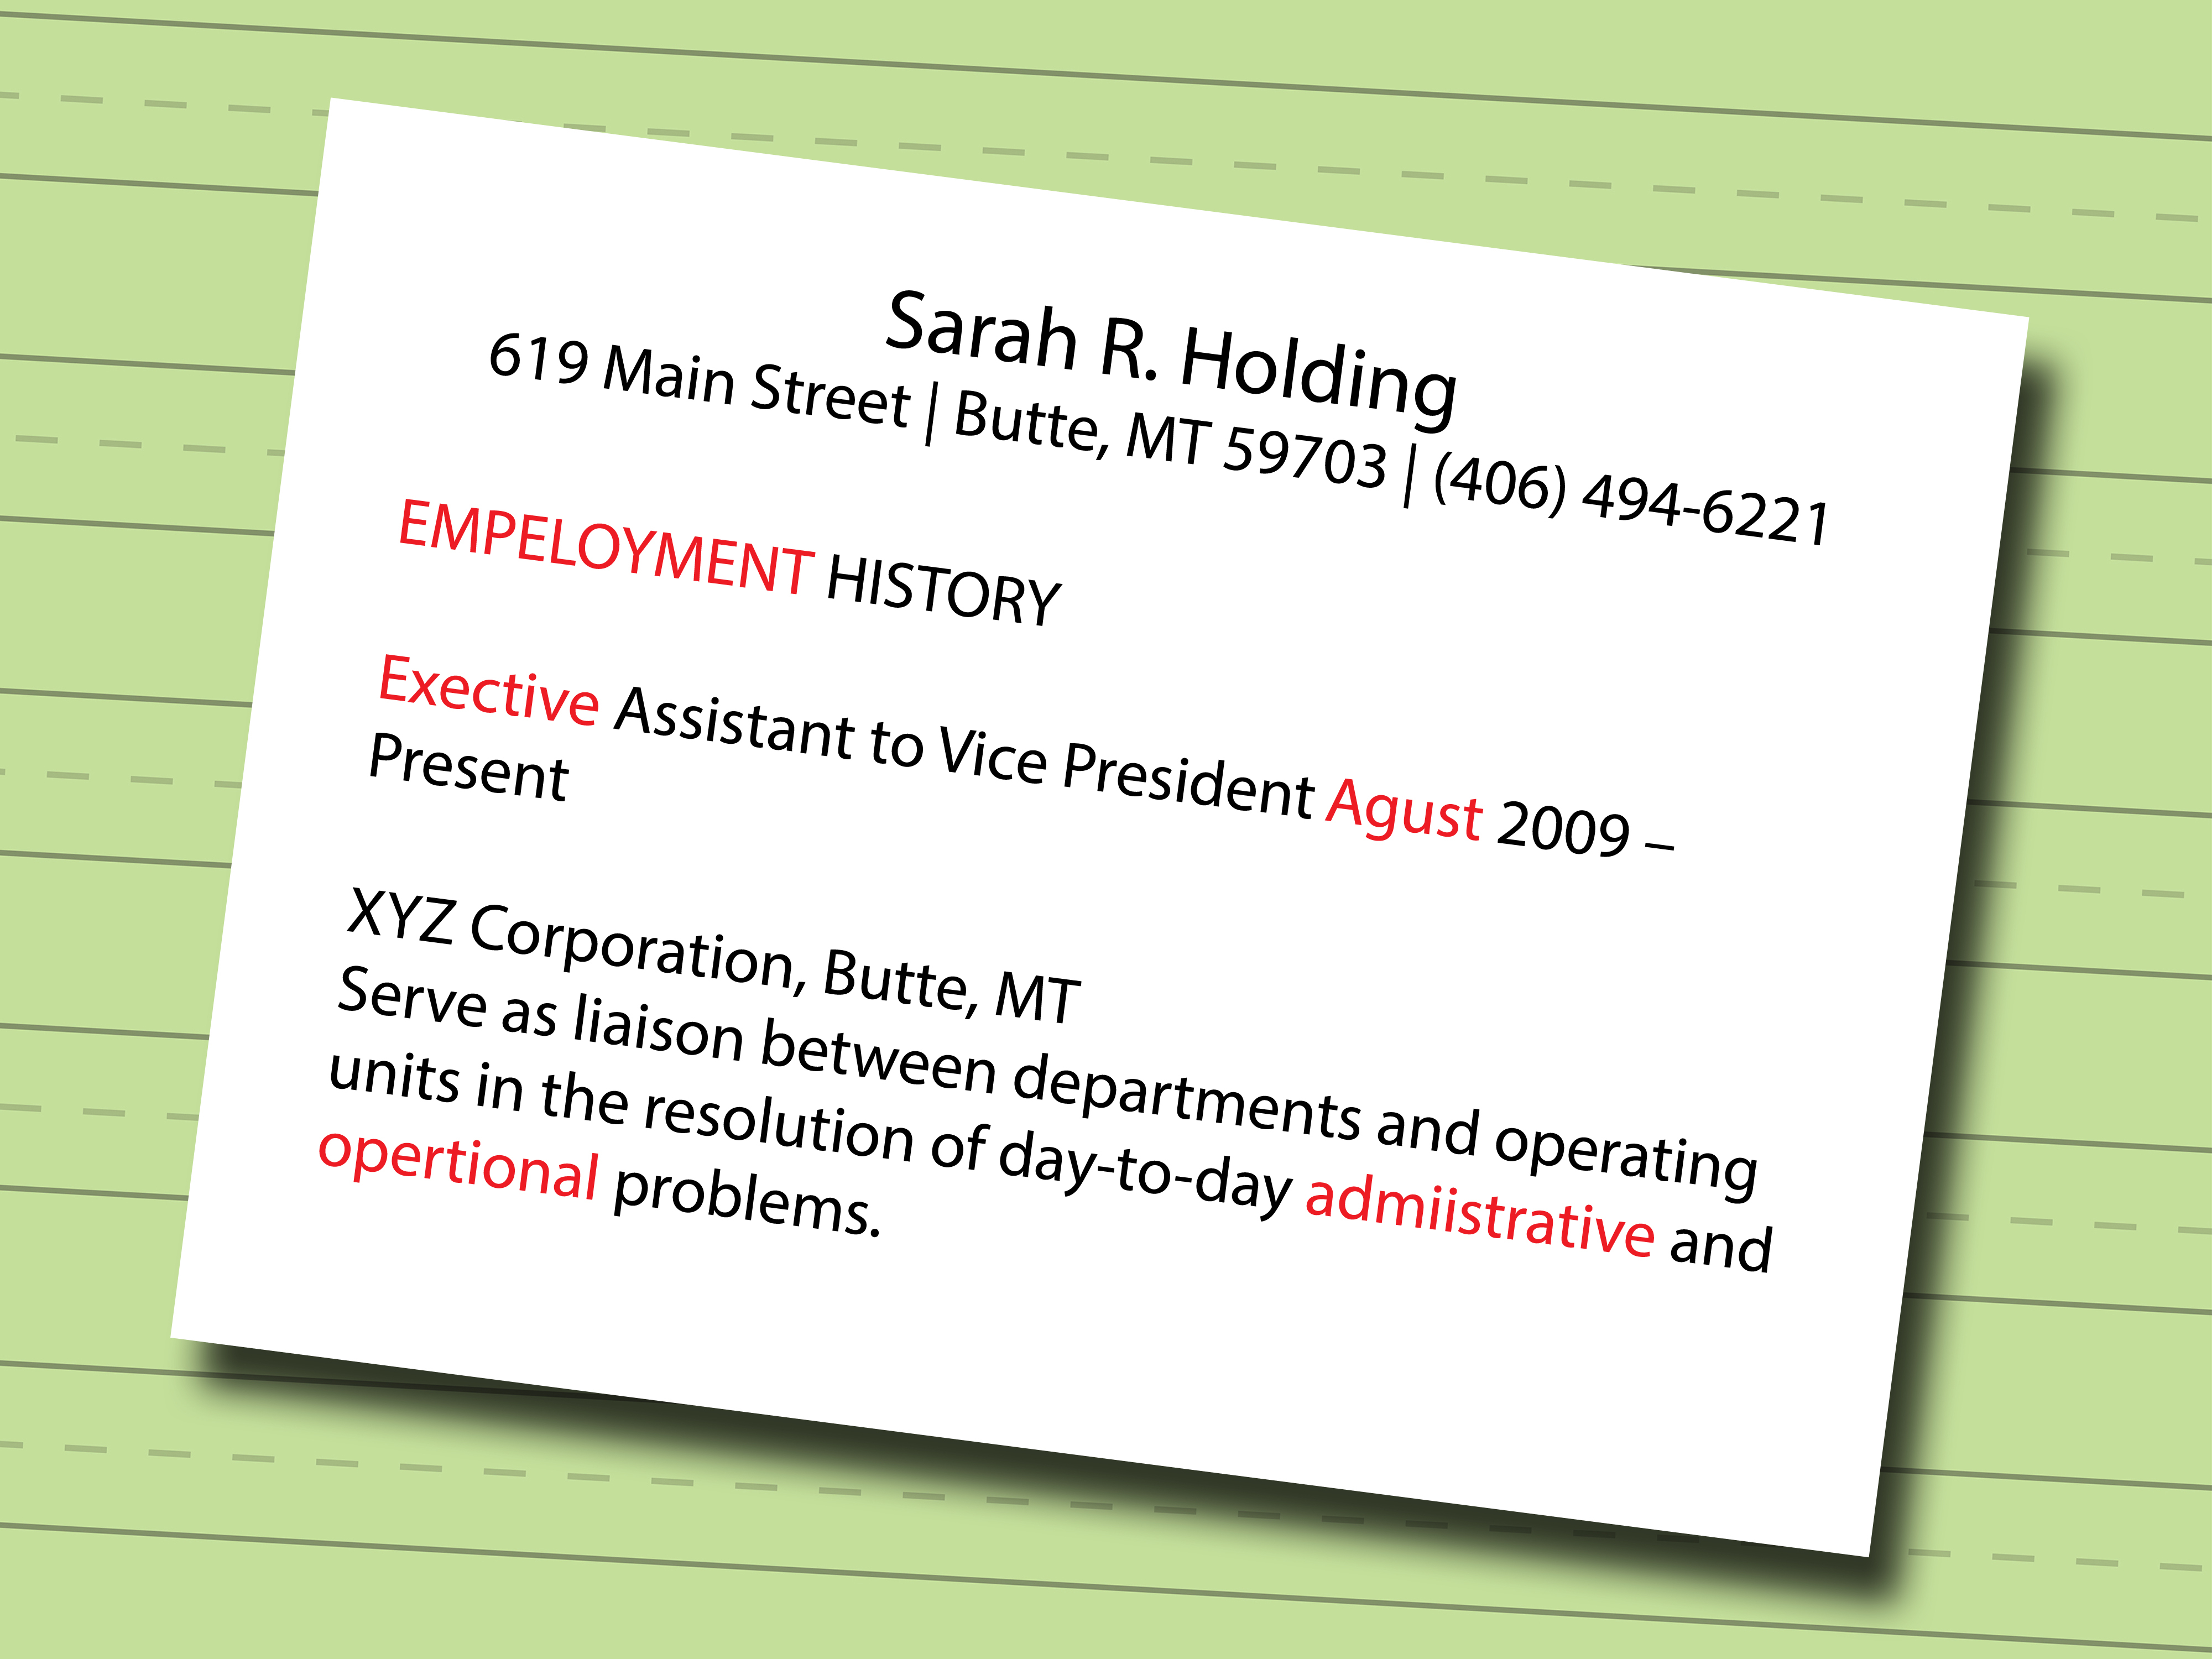 Resume Maker Free Download - 7 Ways to Make A Resume Wikihow